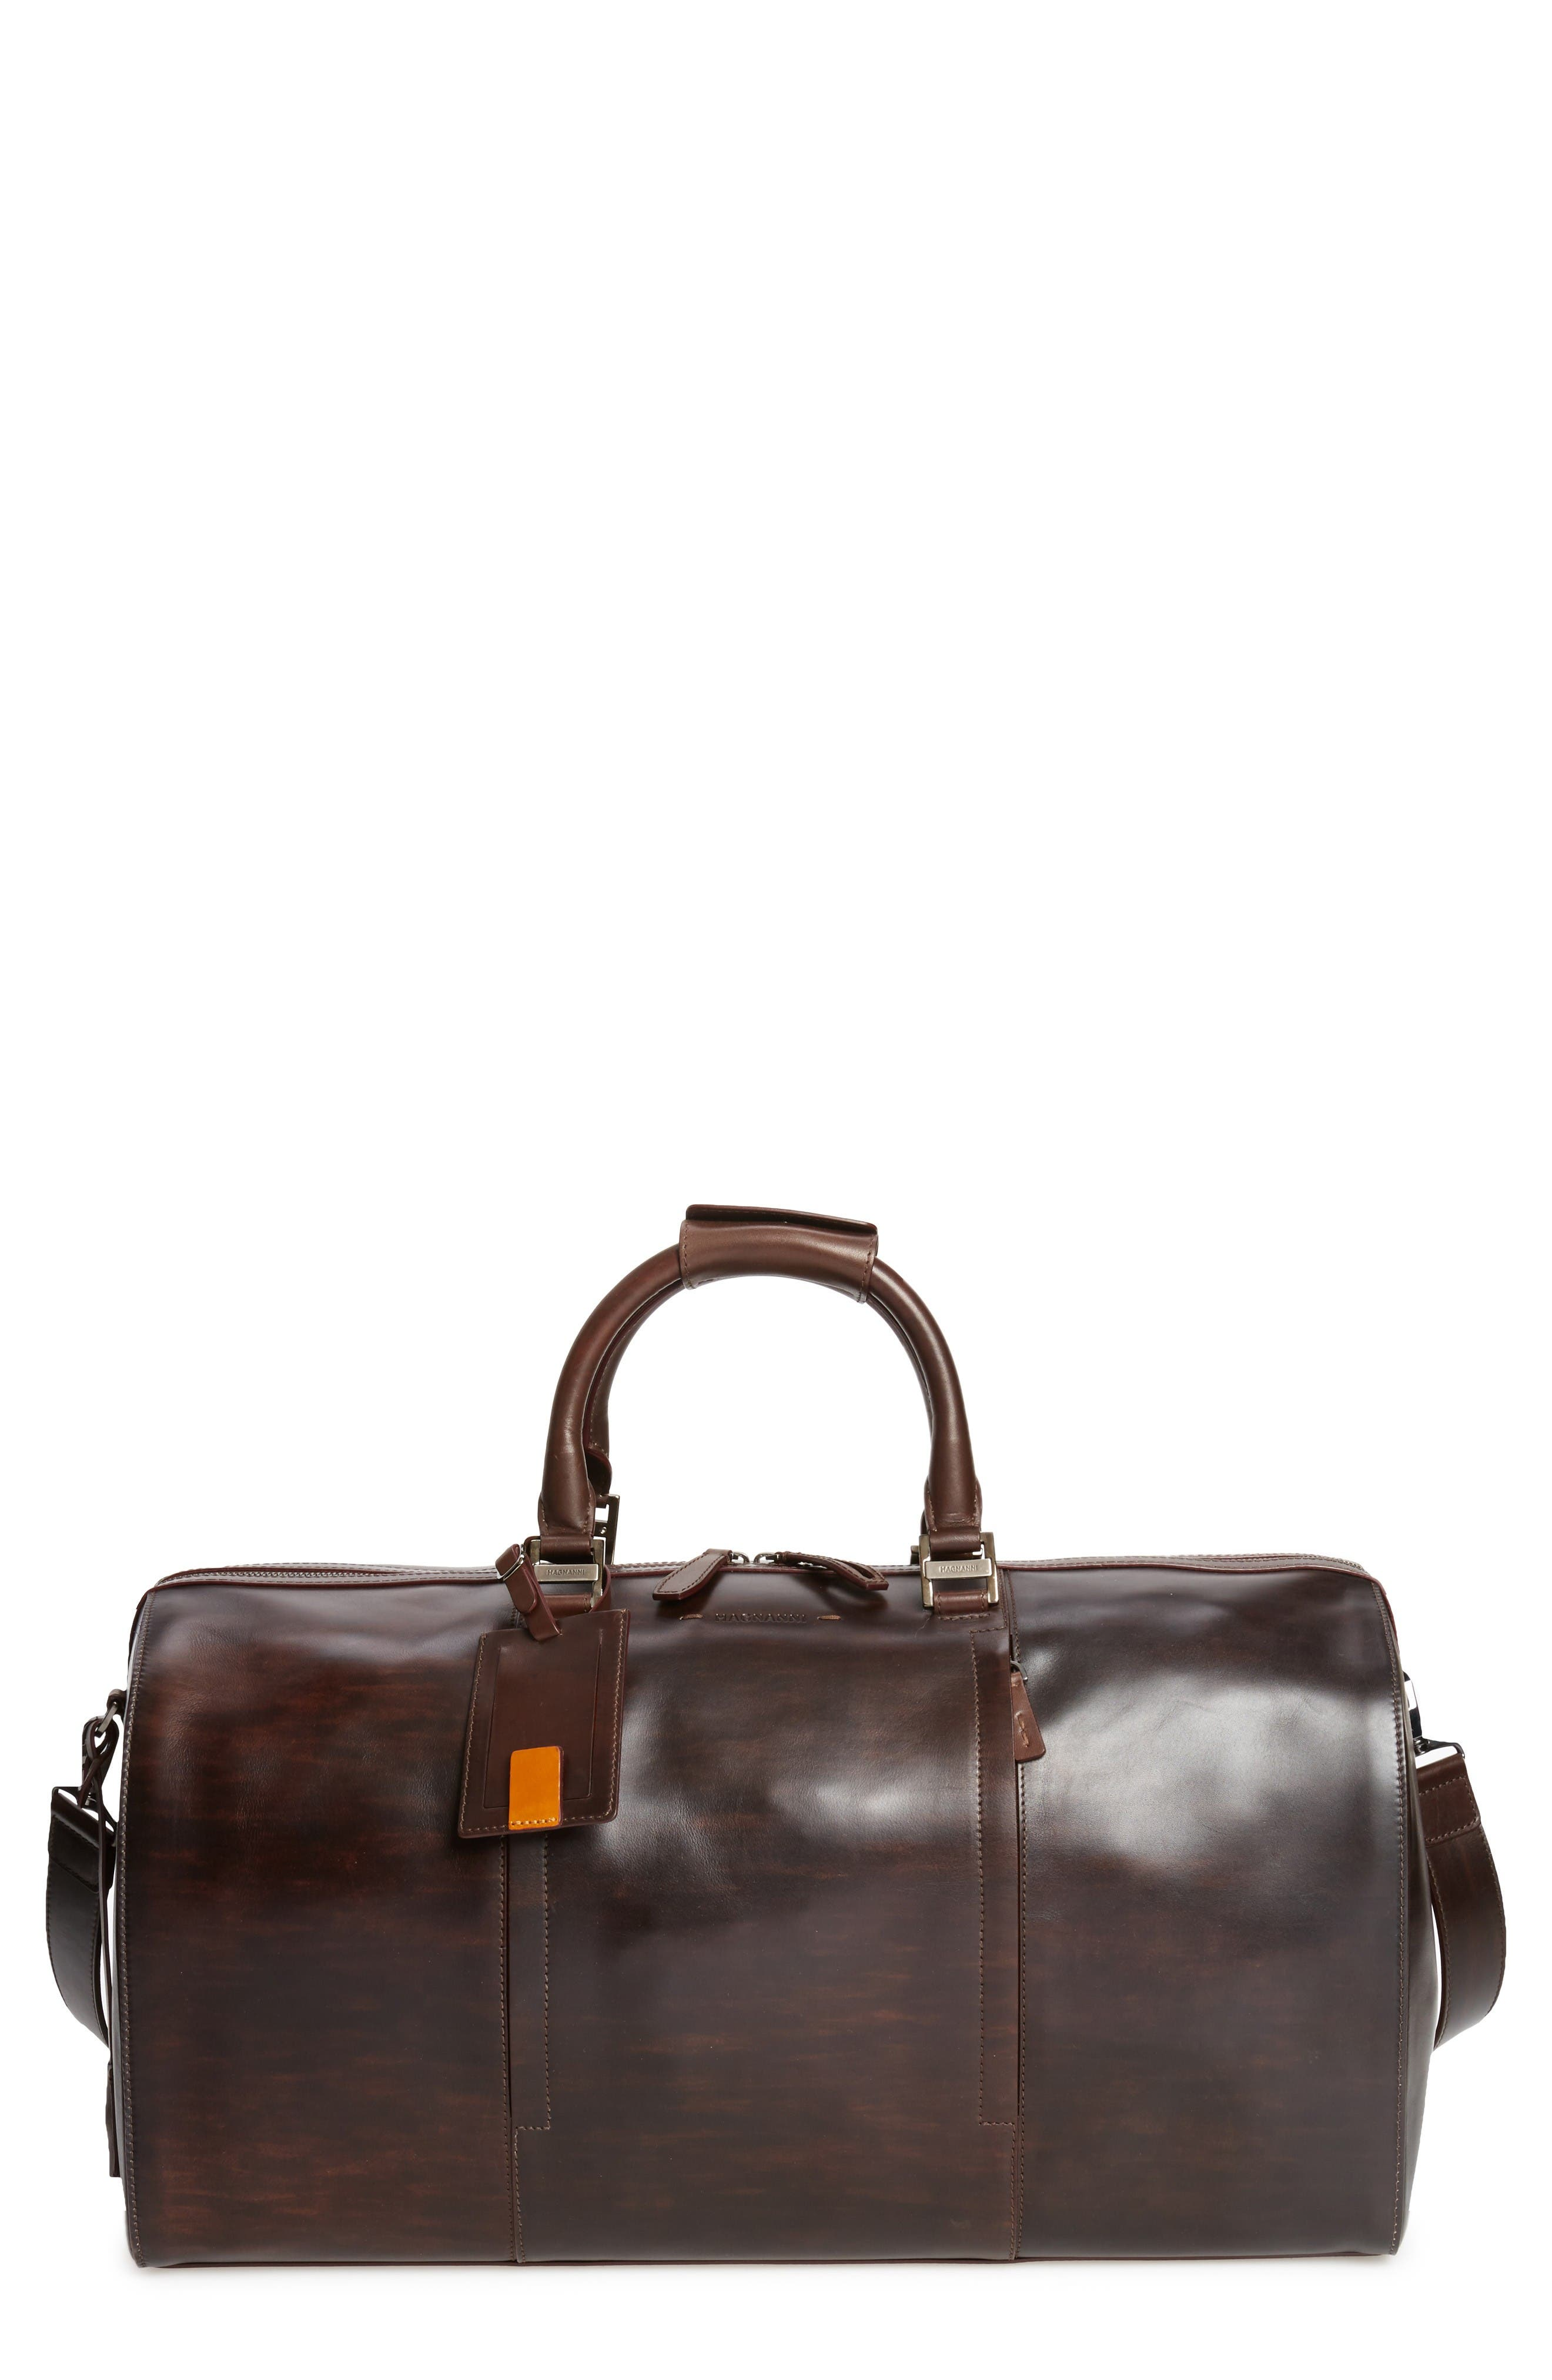 Alternate Image 1 Selected - Magnanni Traveler Leather Duffel Bag